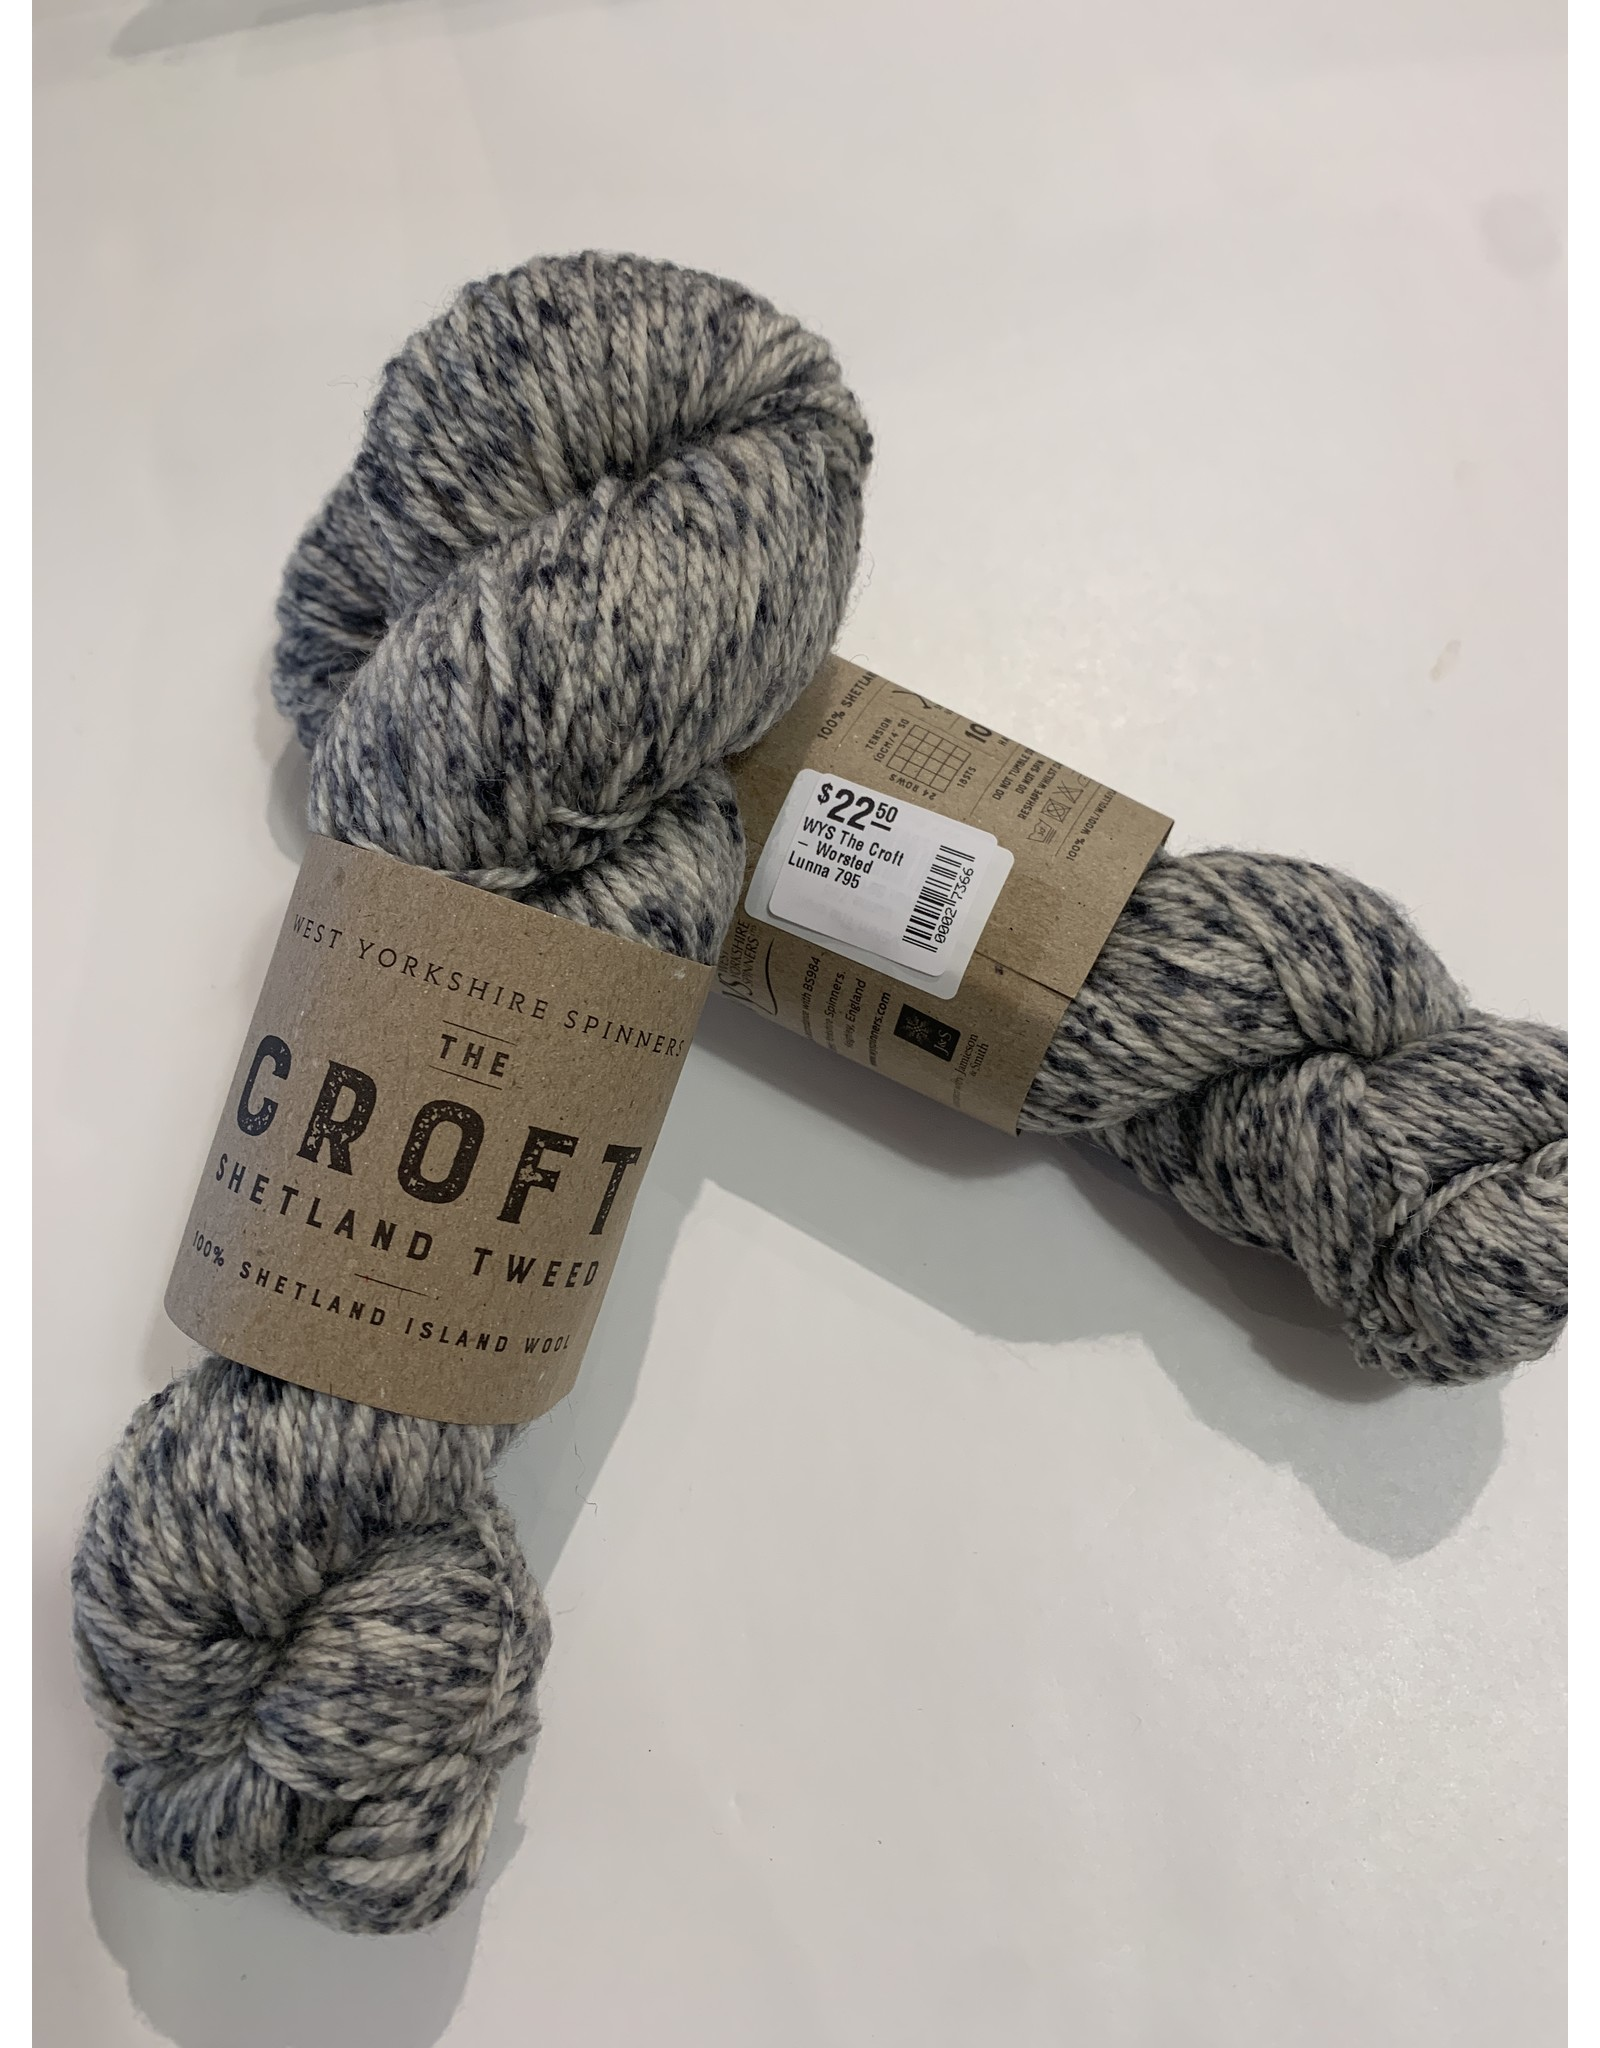 West Yorkshire Spinners WYS The Croft - Worsted